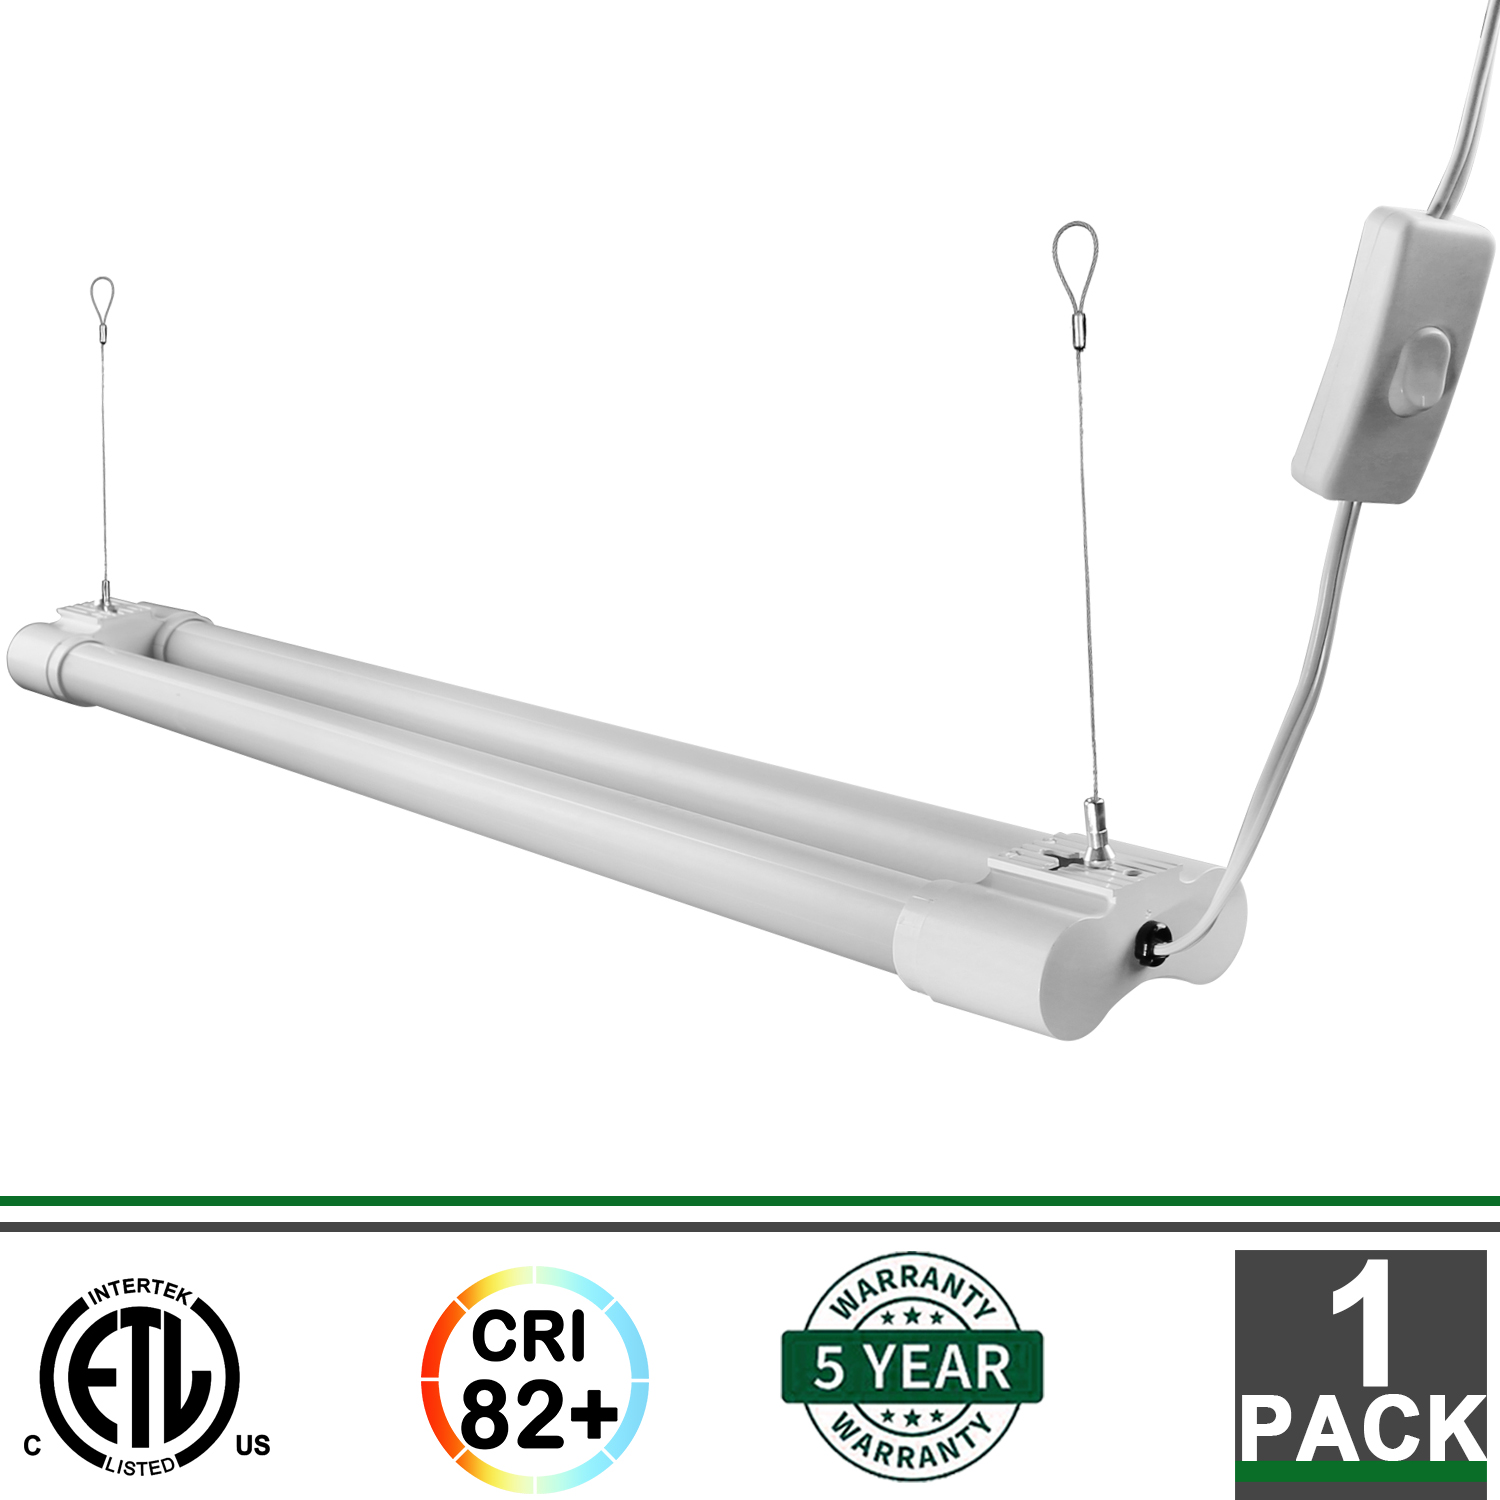 2FT 18W Integrated LED Fixture 5000K 1800 Lumens Garage